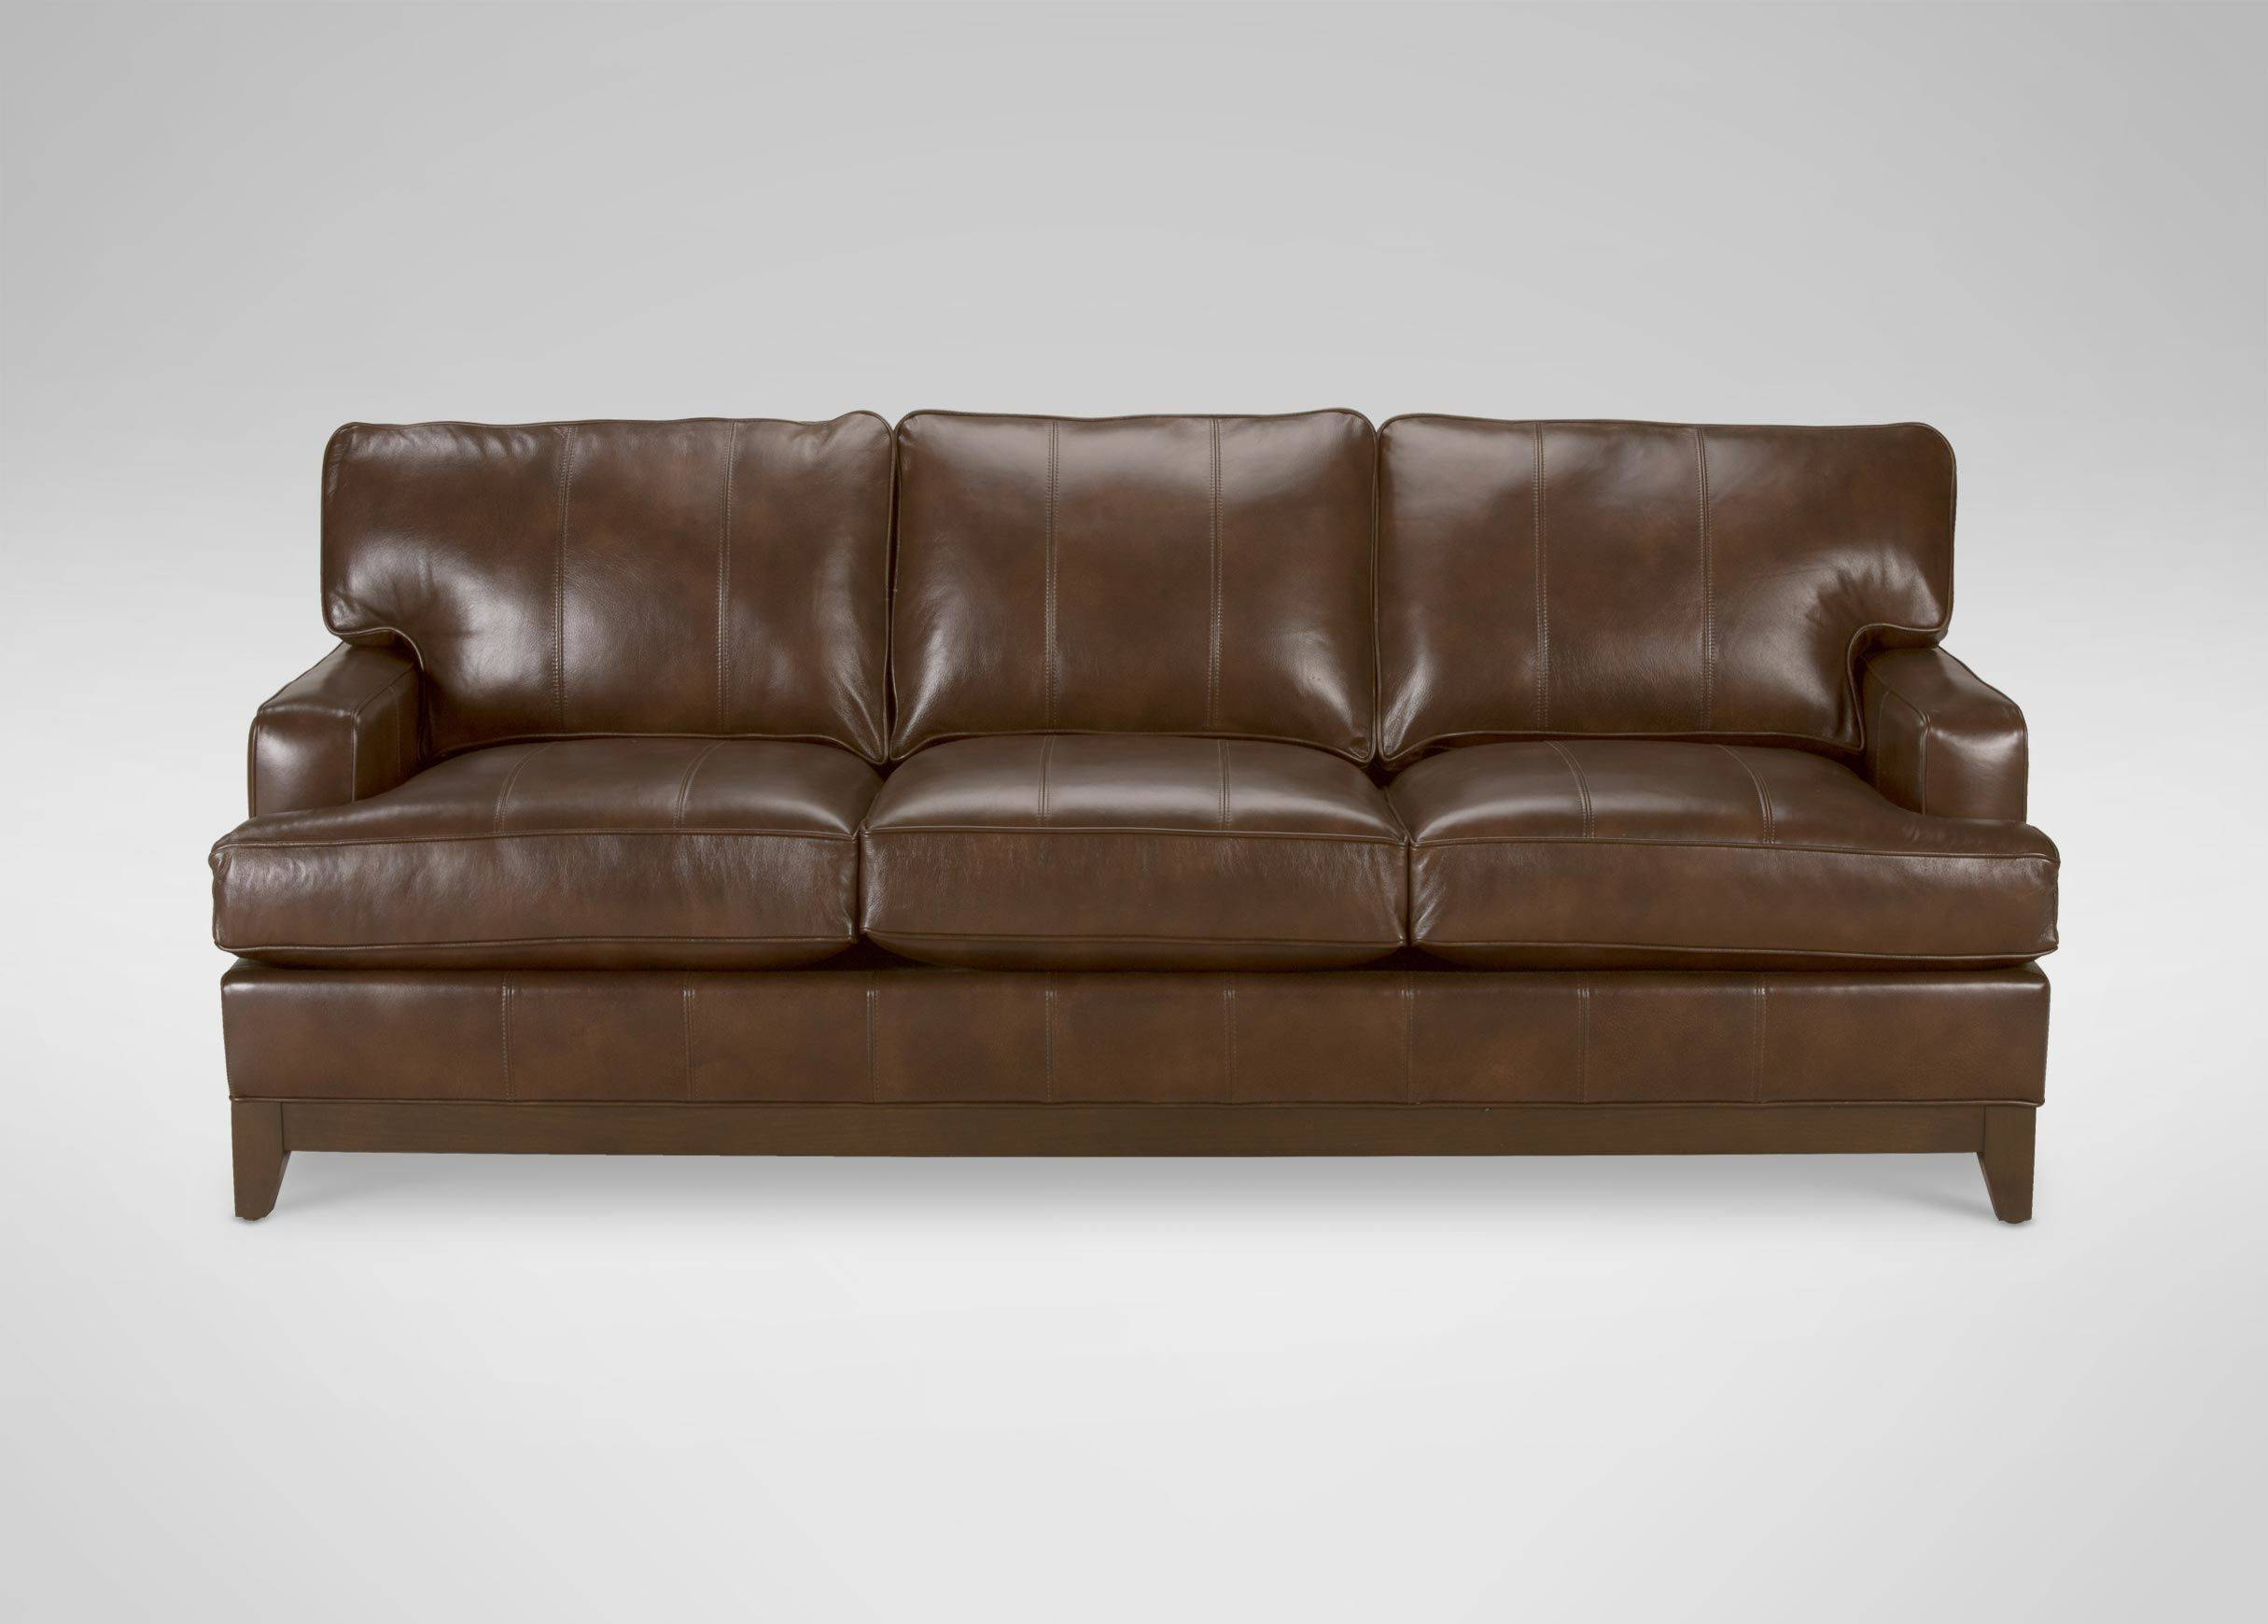 Shop Sofas And Loveseats Brilliant Leather Sofas - Home Design Ideas within Leather Sofas (Image 26 of 30)